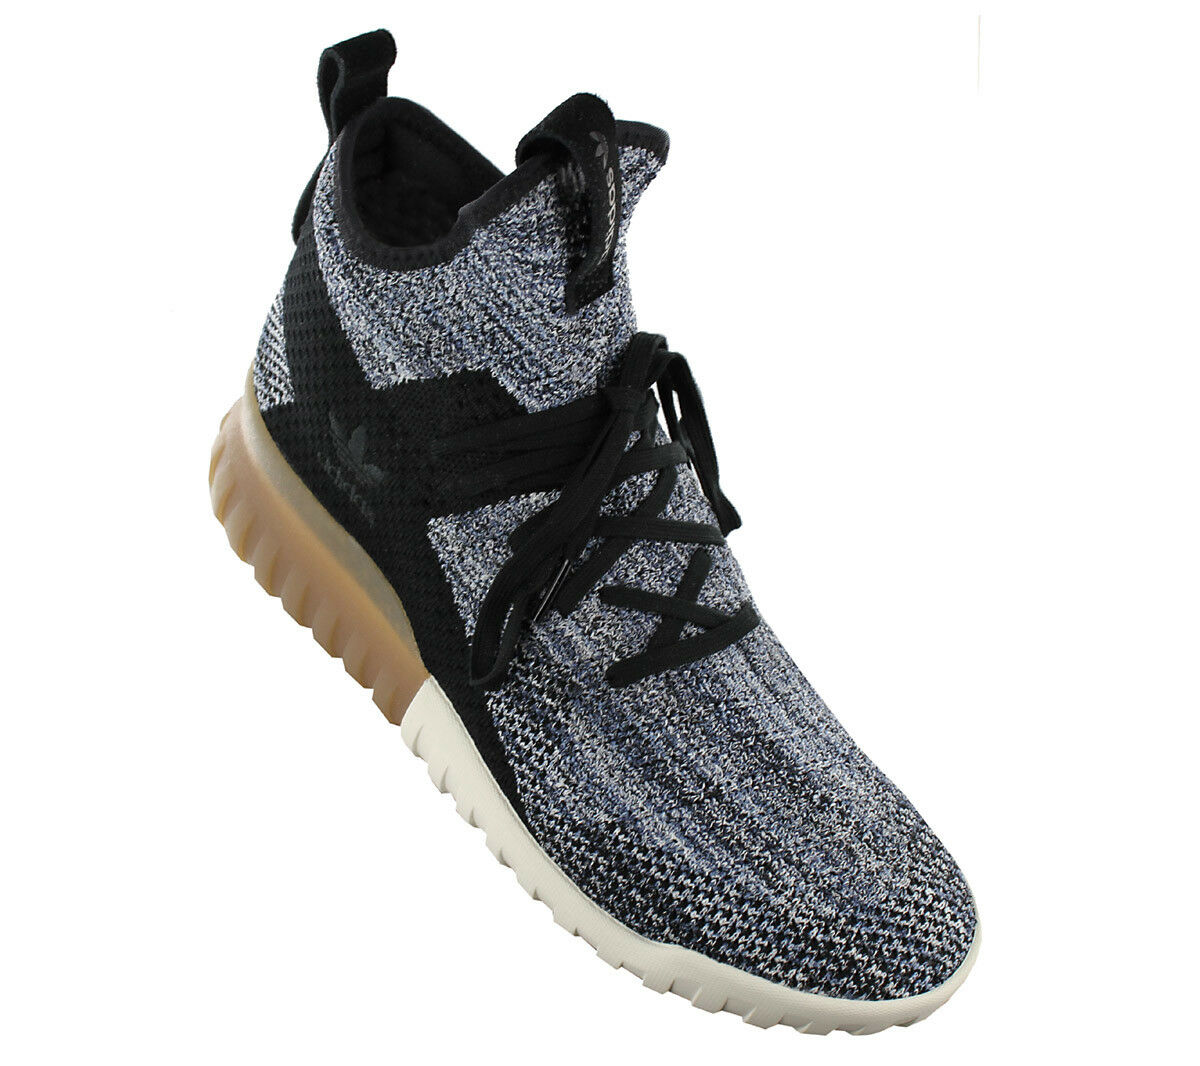 NEW adidas Tubular X PK Primeknit BY3145 Men''s shoes Trainers Sneakers SALE